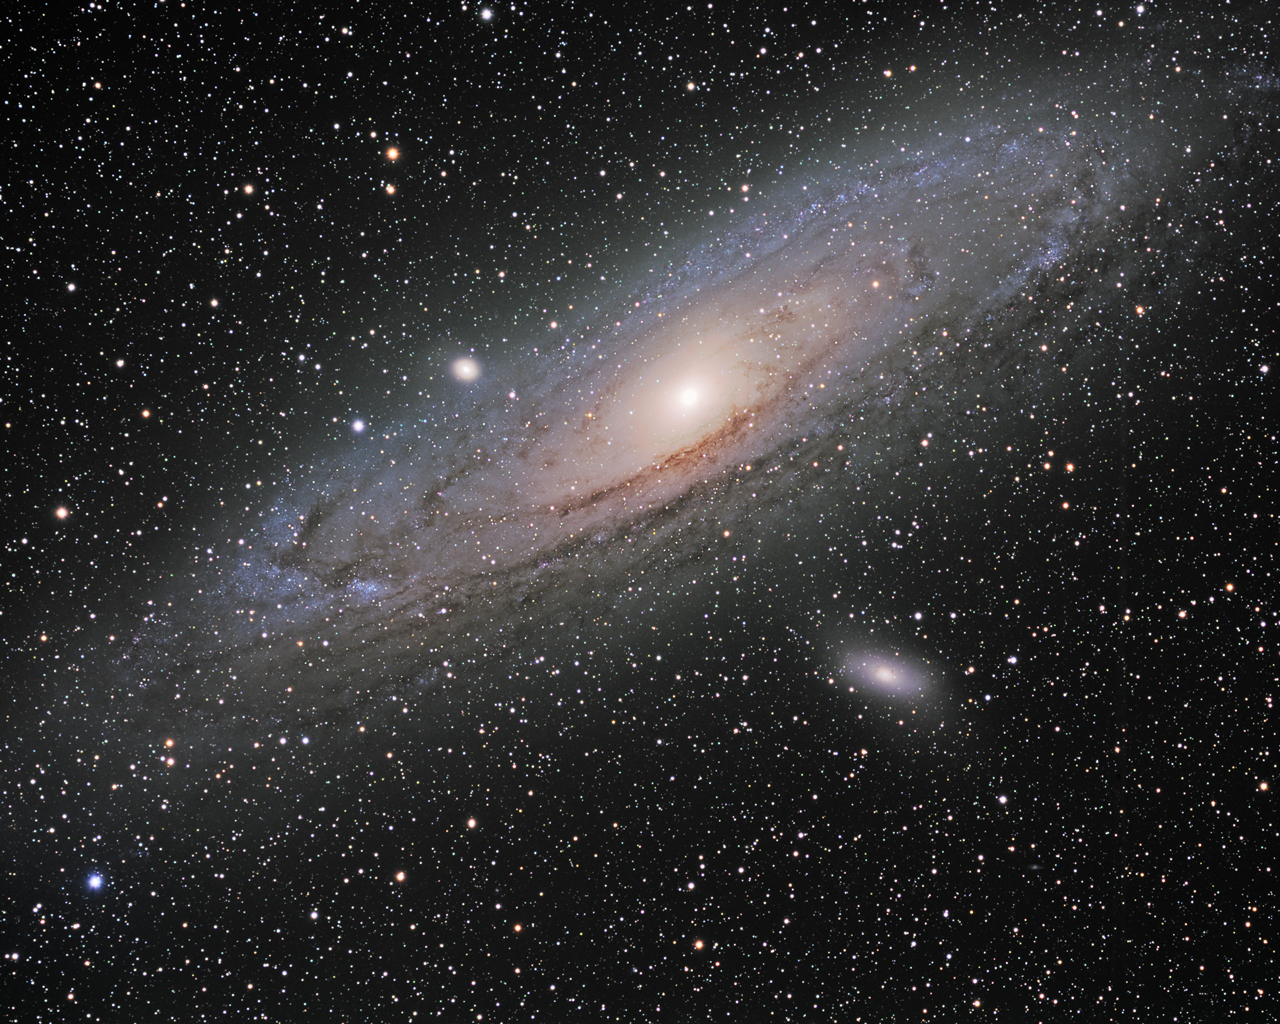 andromeda galaxy - photo #23